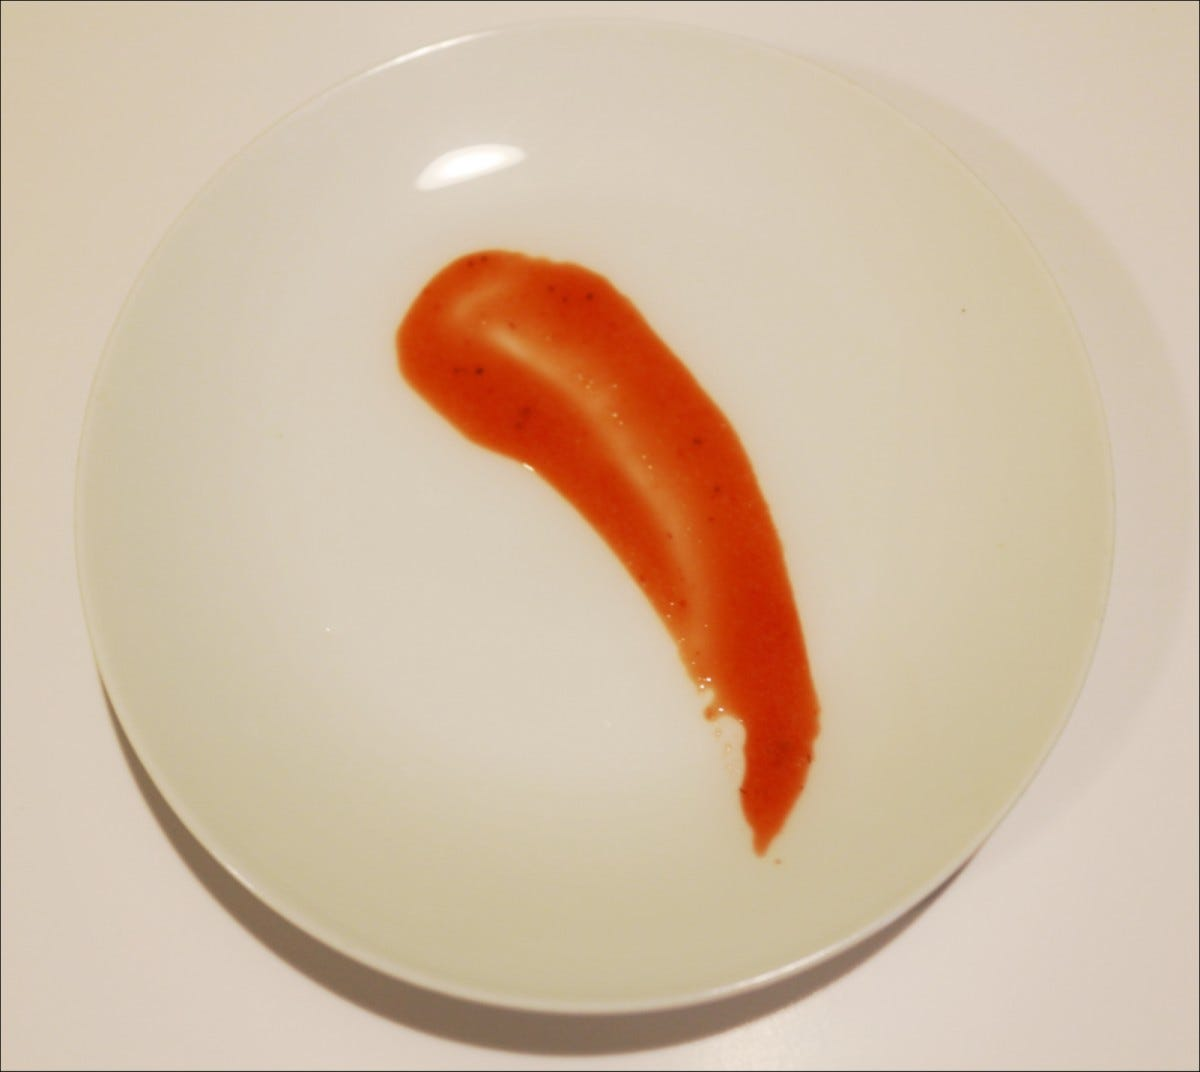 Strawberry puree design created by dragging the bottom part of a spoon across the white plate.